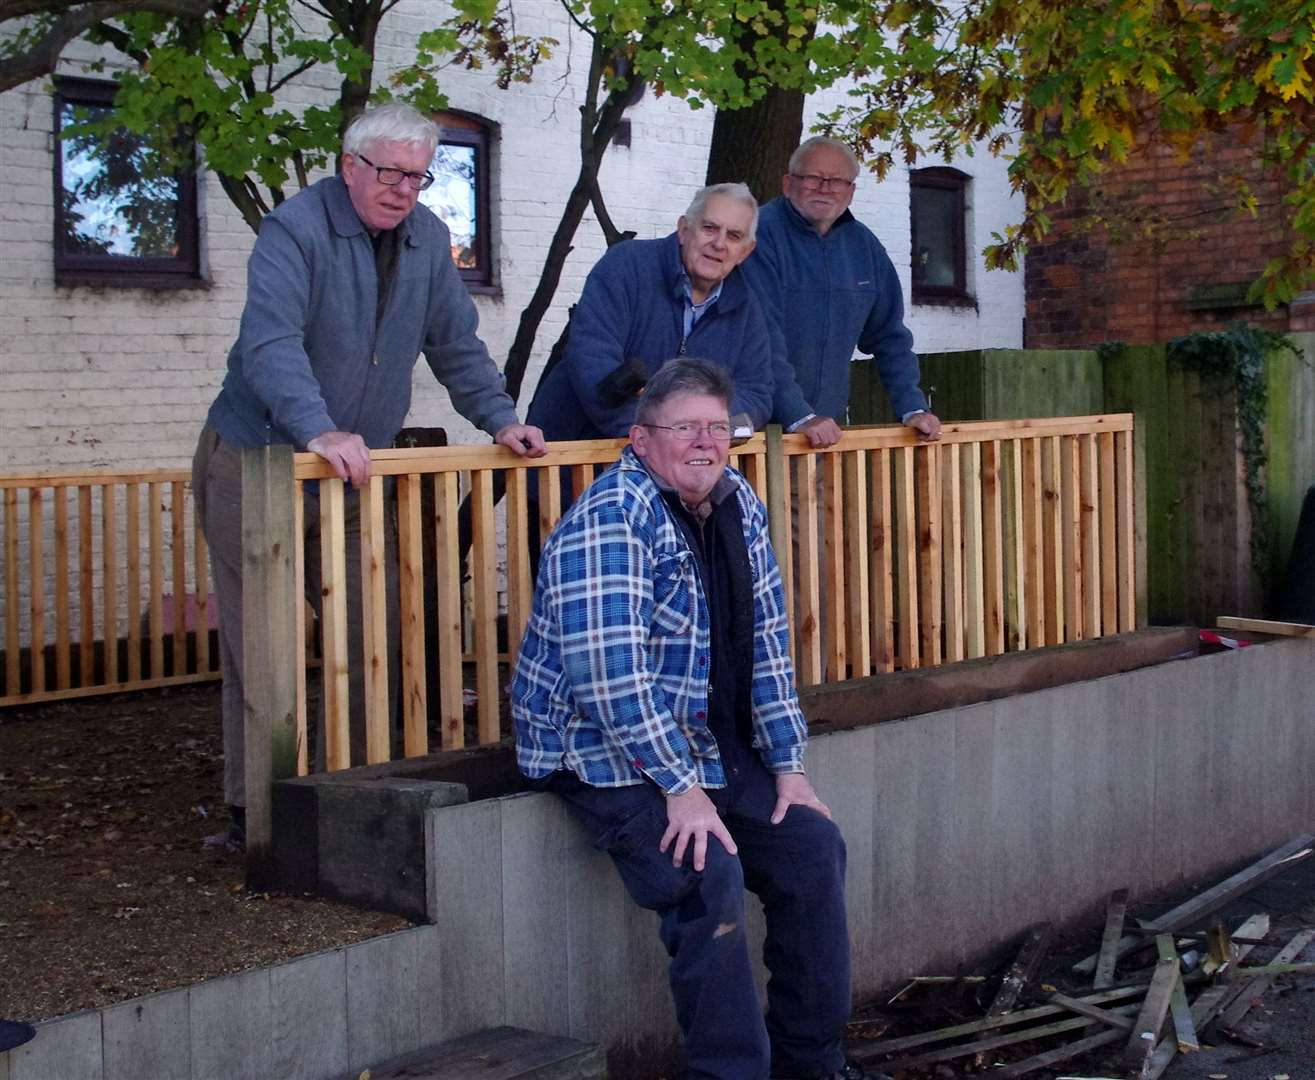 COLLINGHAM'S Men in Sheds team, from left to right, is Richard Challand, Dennis Pratt, Dez Williams and Jim Milner (seated).